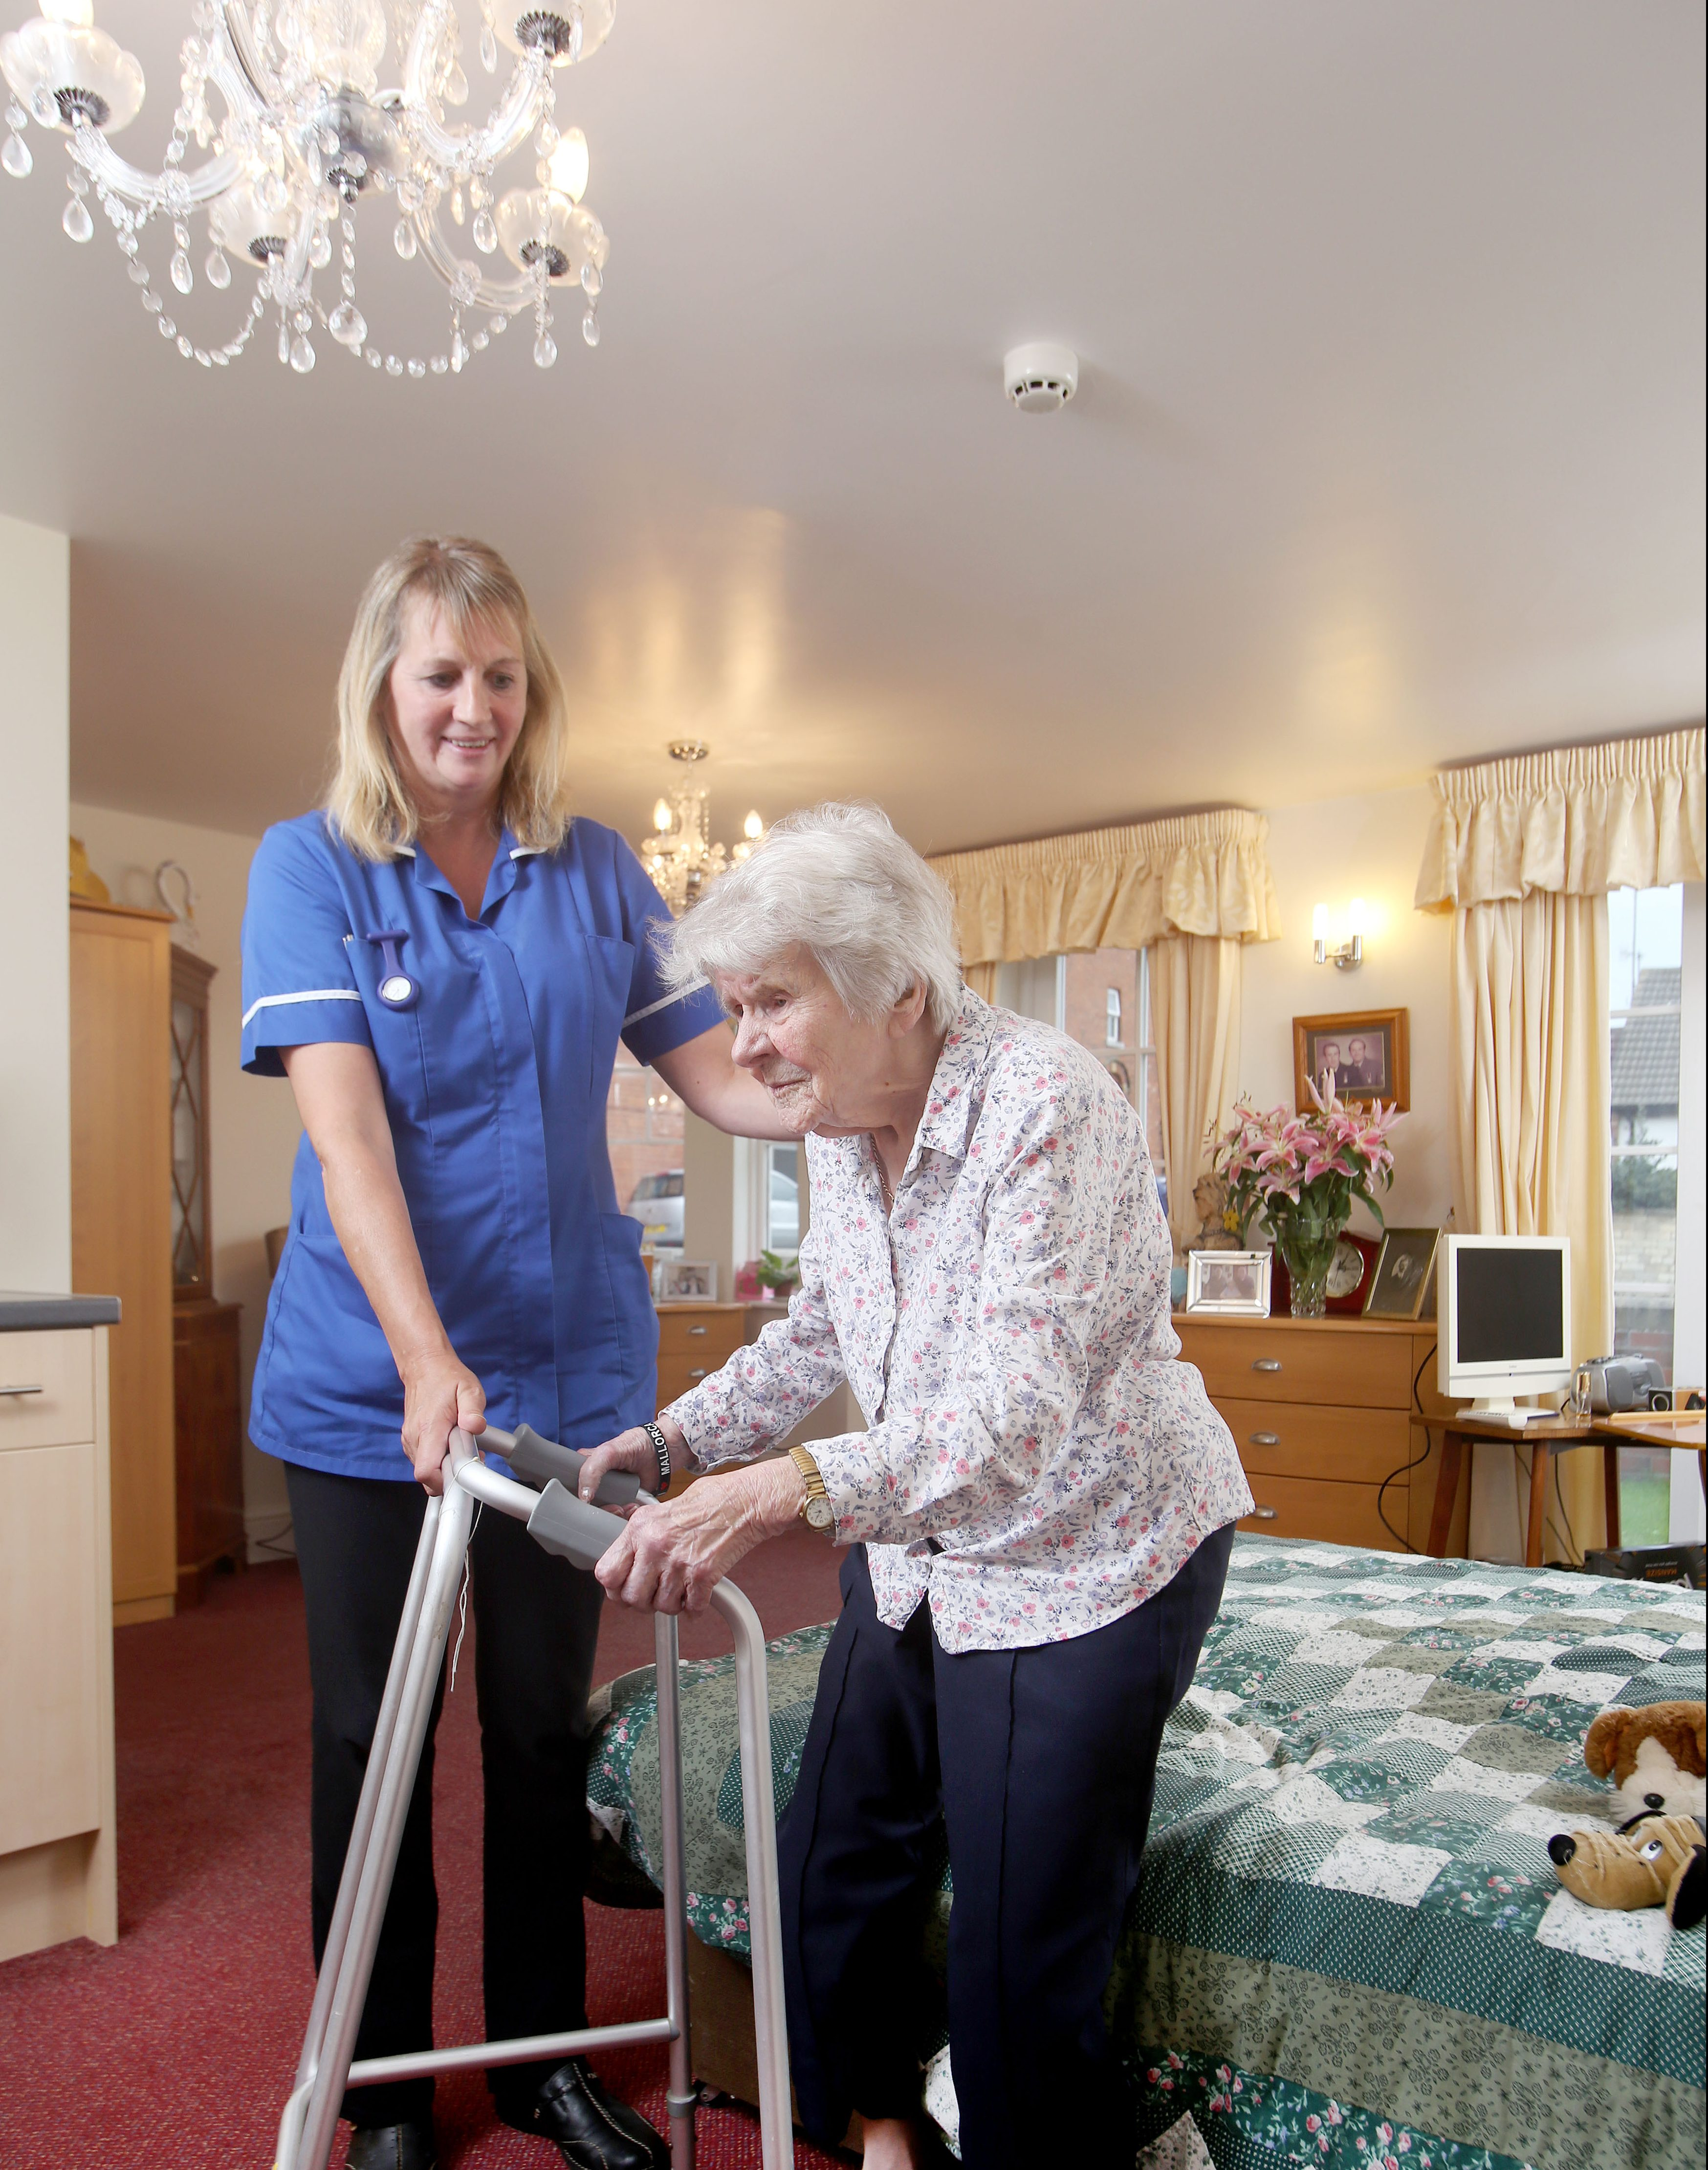 care assistant helping a resident in her room